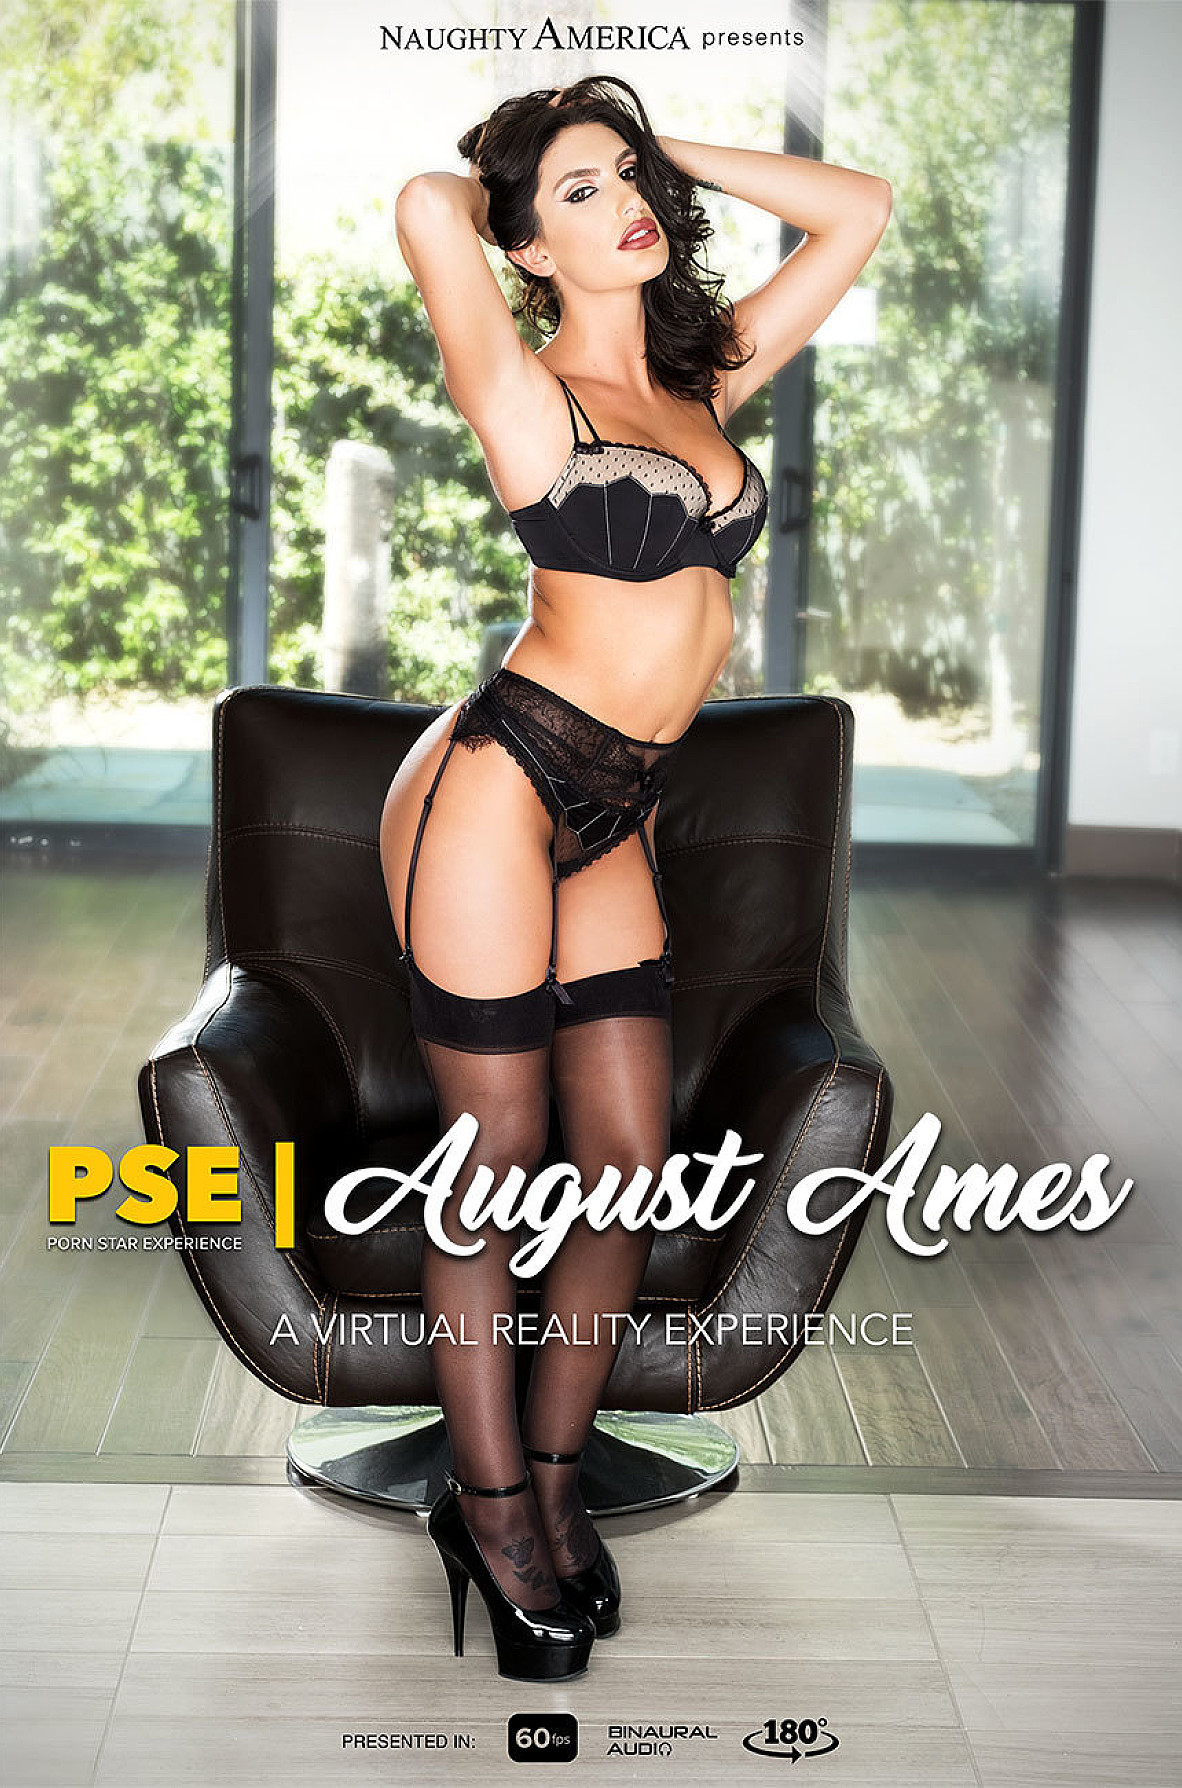 Watch August Ames and Ryan Driller VR video in Naughty America